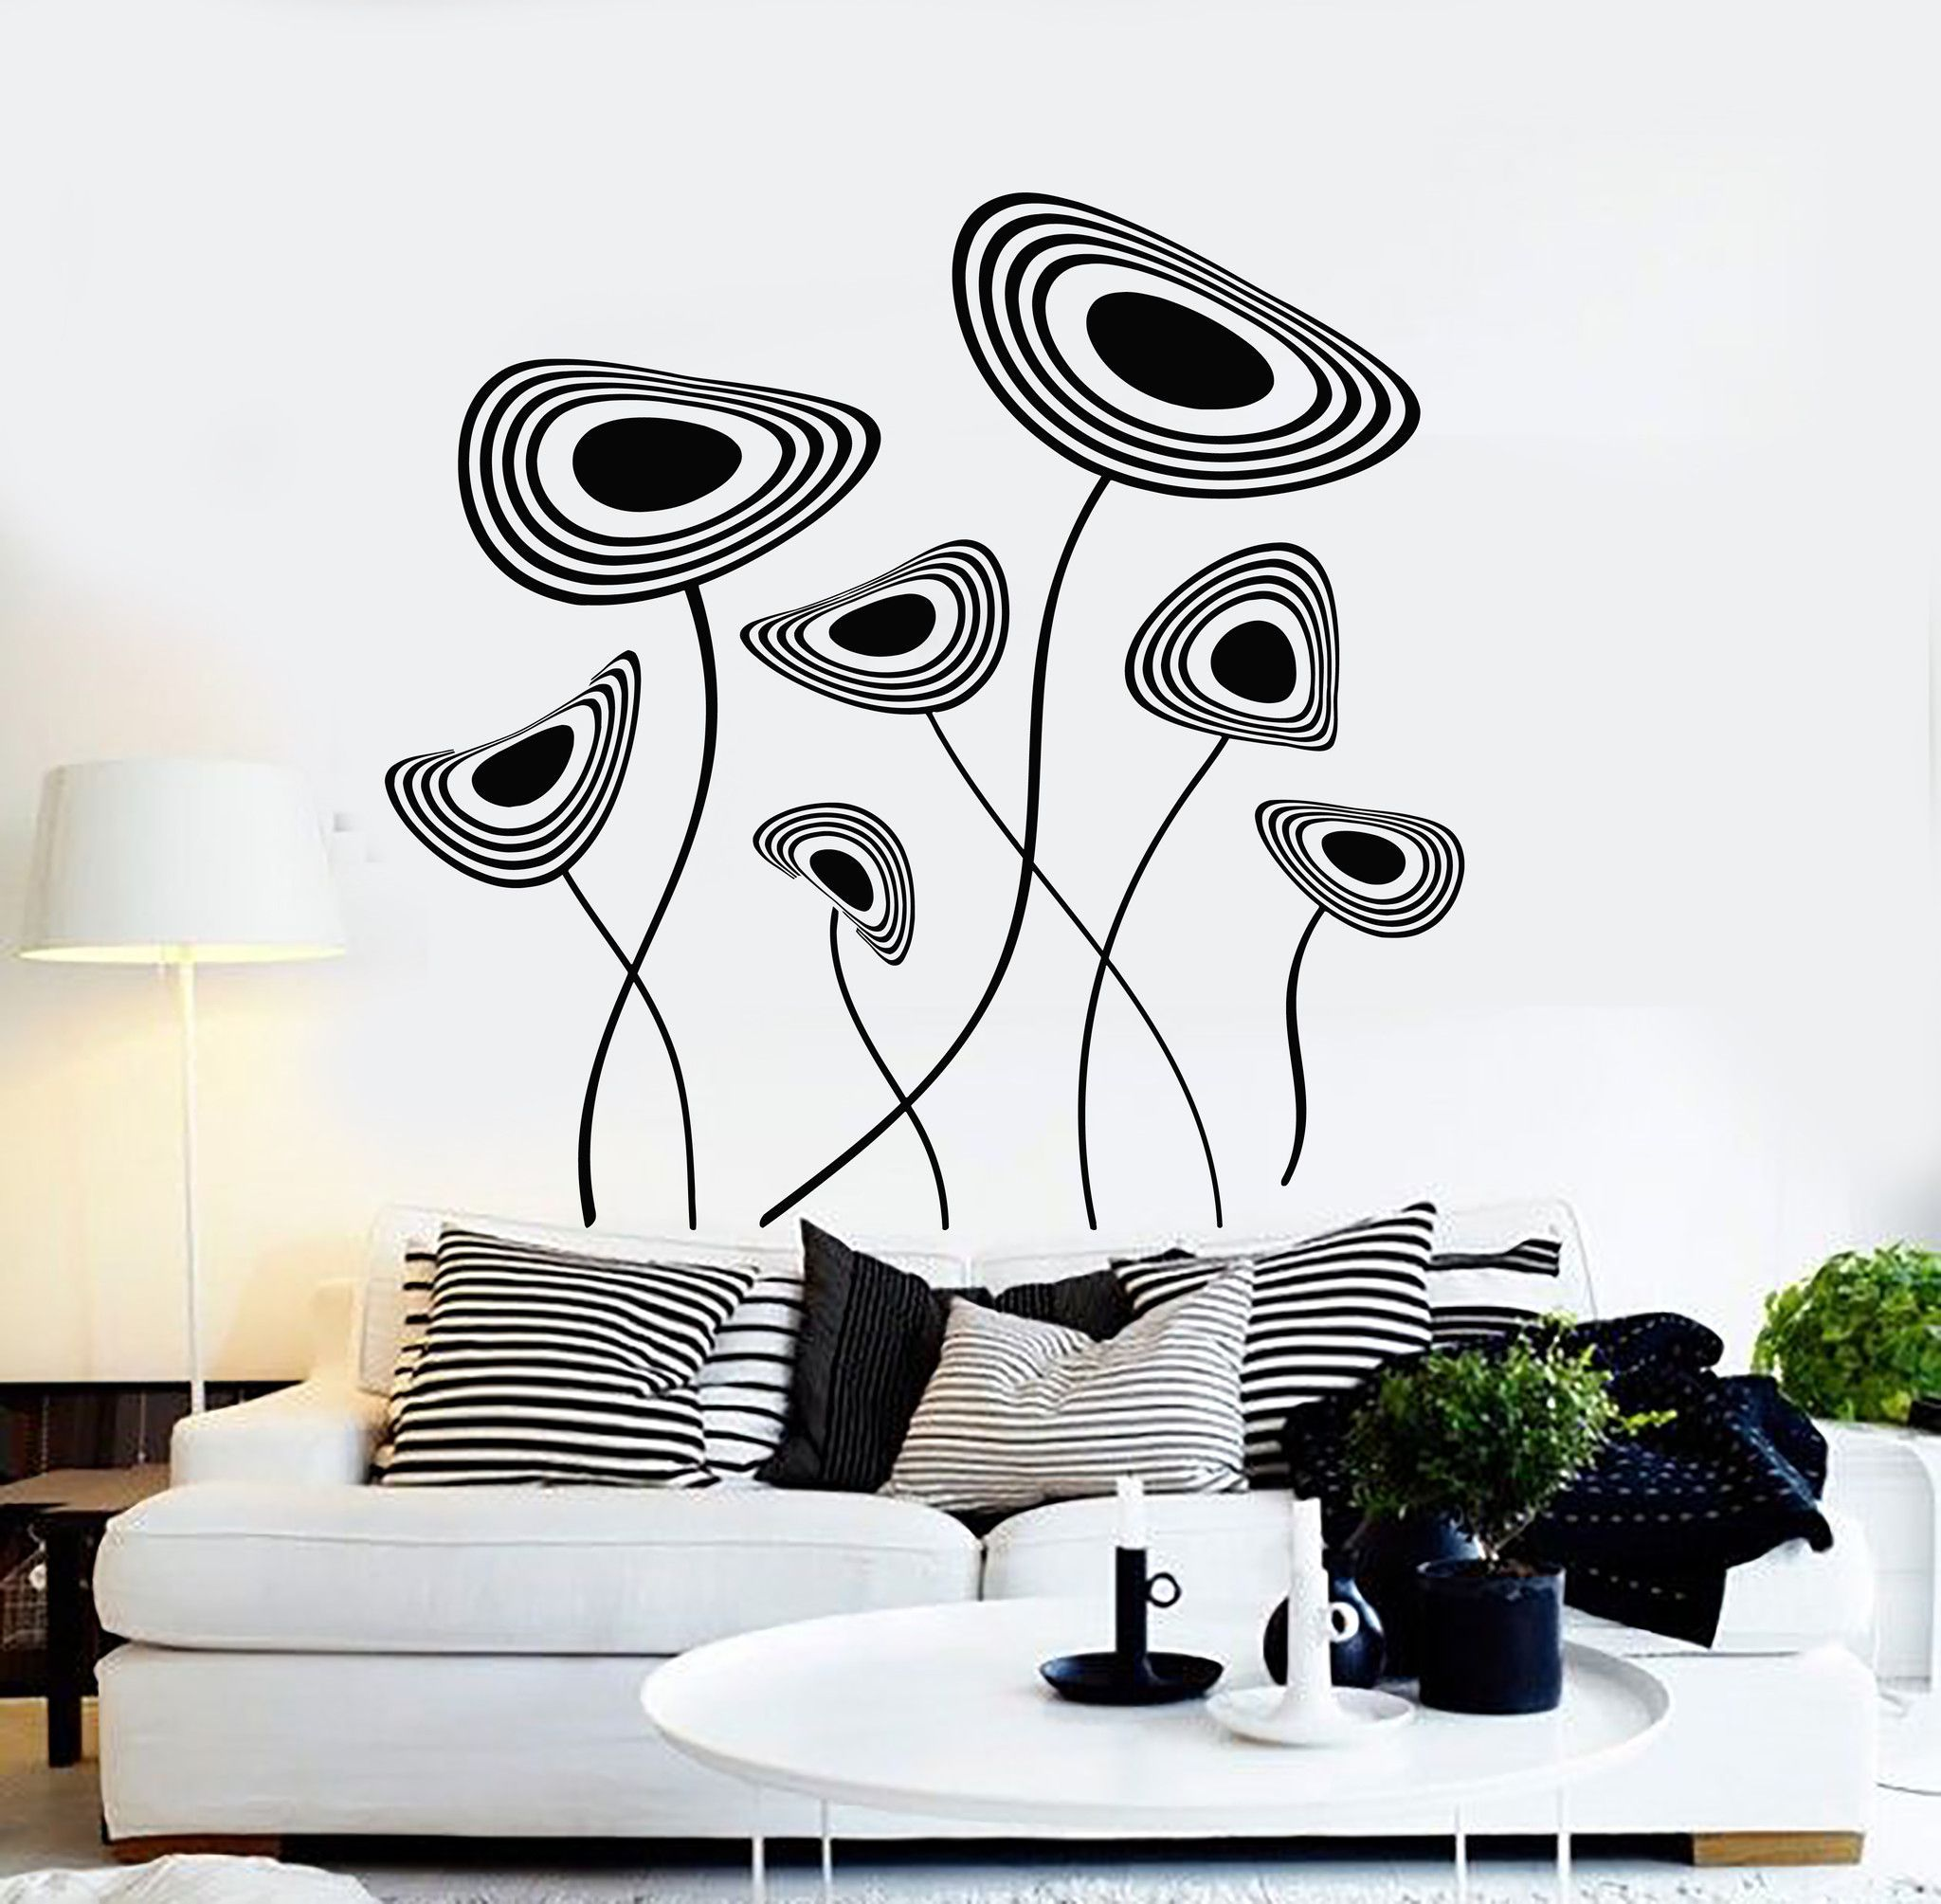 Vinyl Wall Decal Abstract Flowers House Interior Room Art Stickers ...